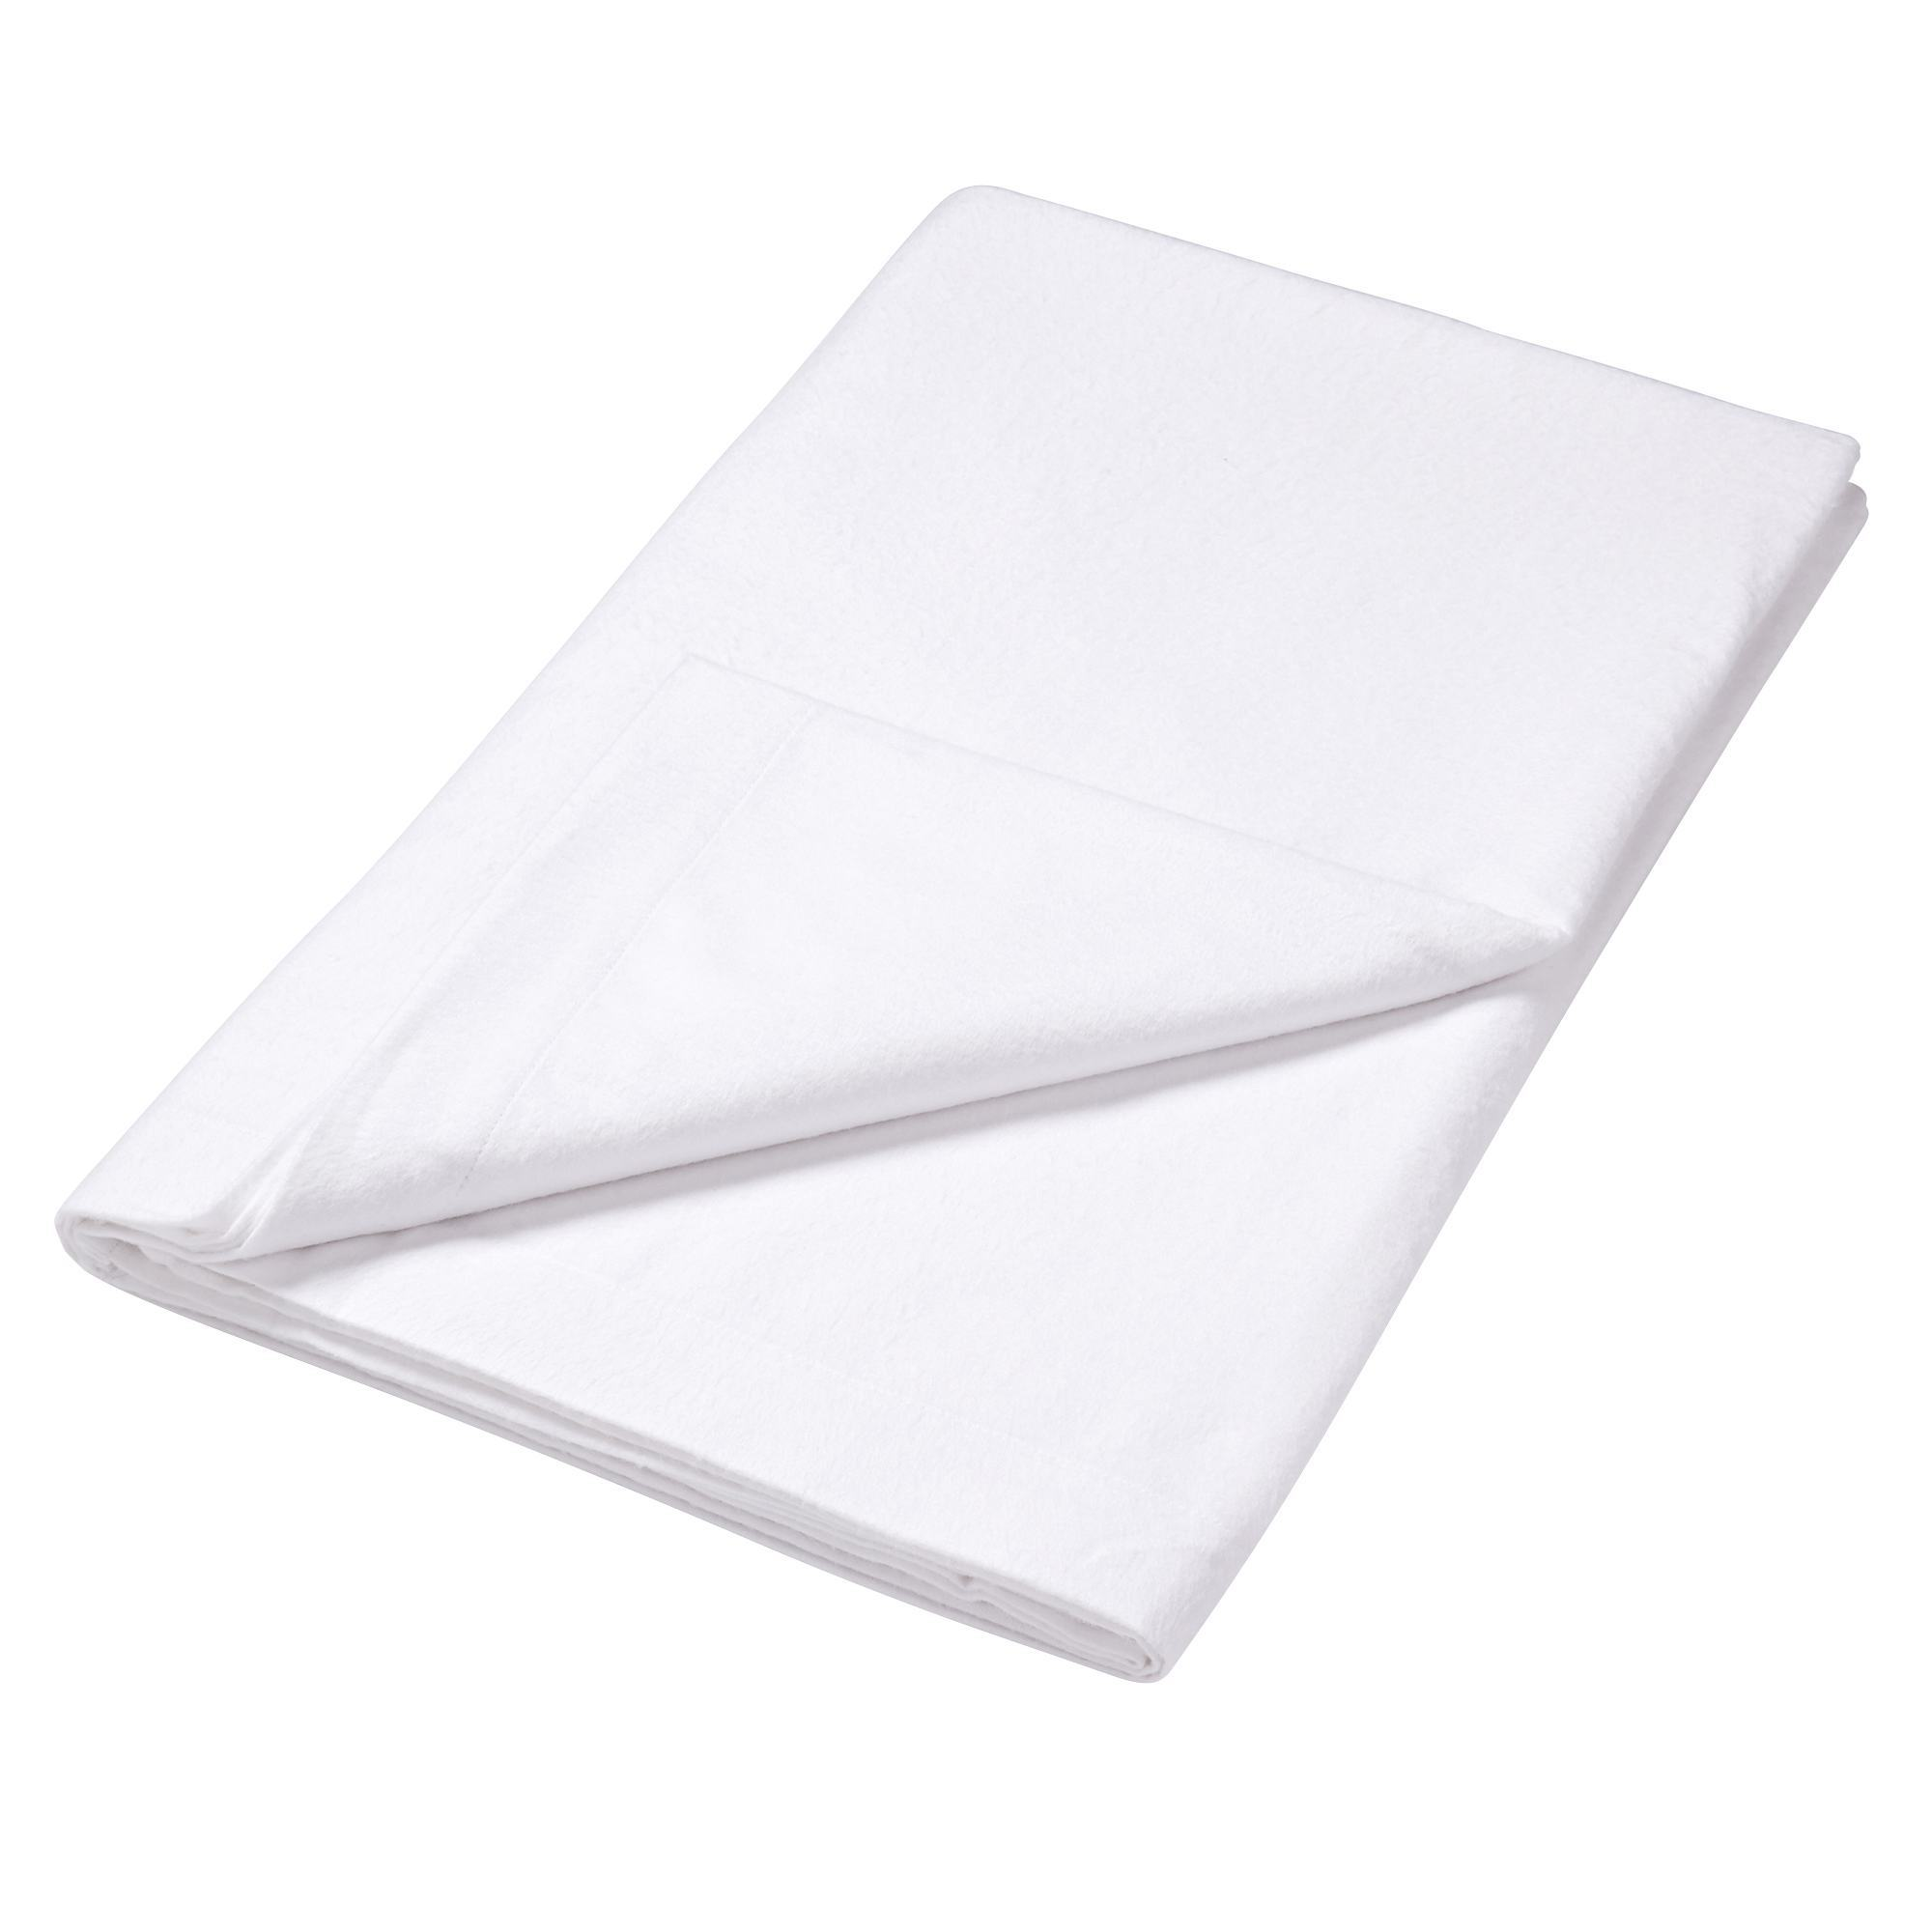 Photo of Luxury brushed cotton flat sheet white